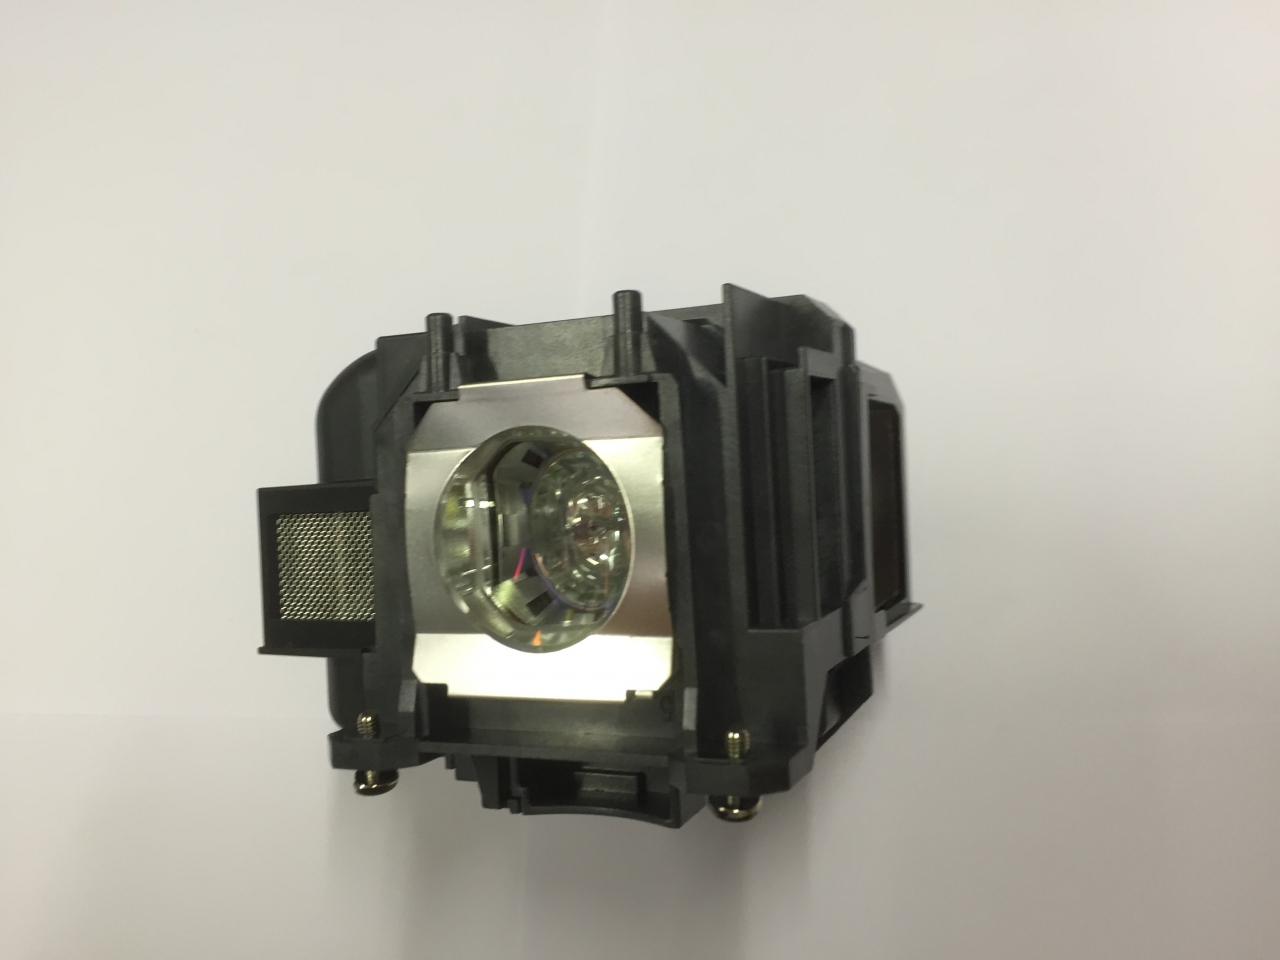 Original Epson ELPLP88 Projector Lamp by Epson